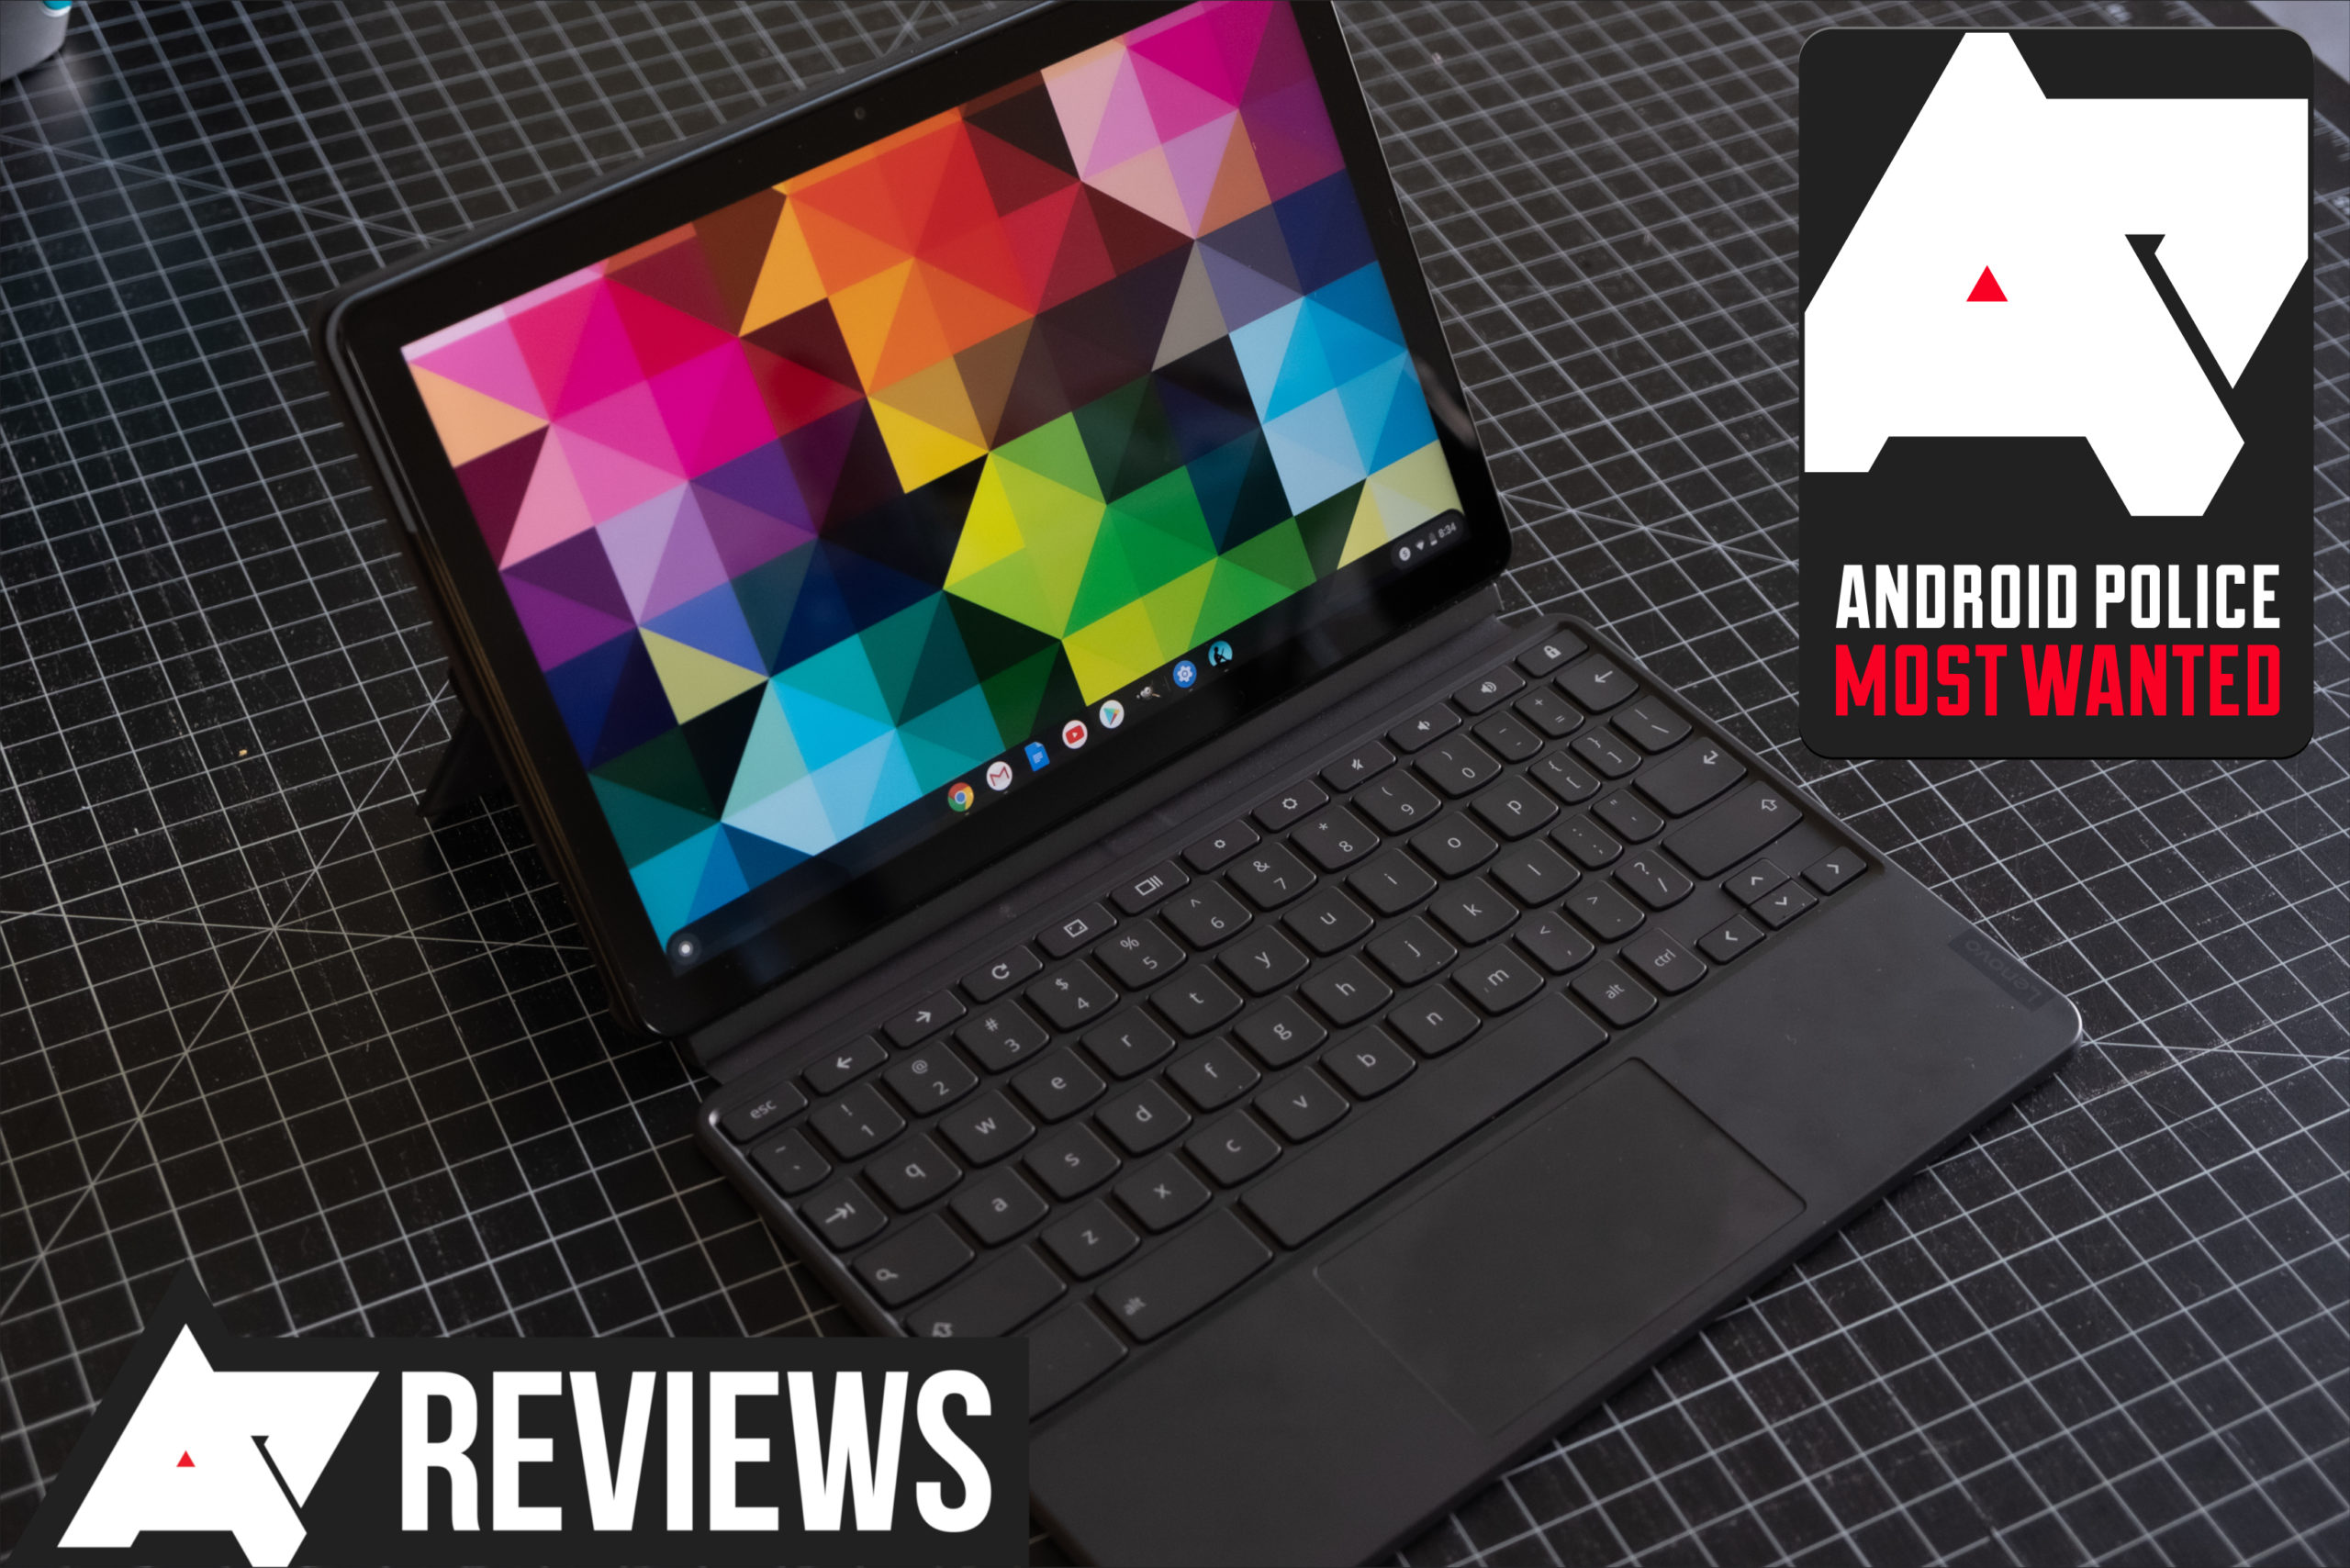 Lenovo Chromebook Duet Review The First Chrome Os Tablet That Mostly Makes Sense